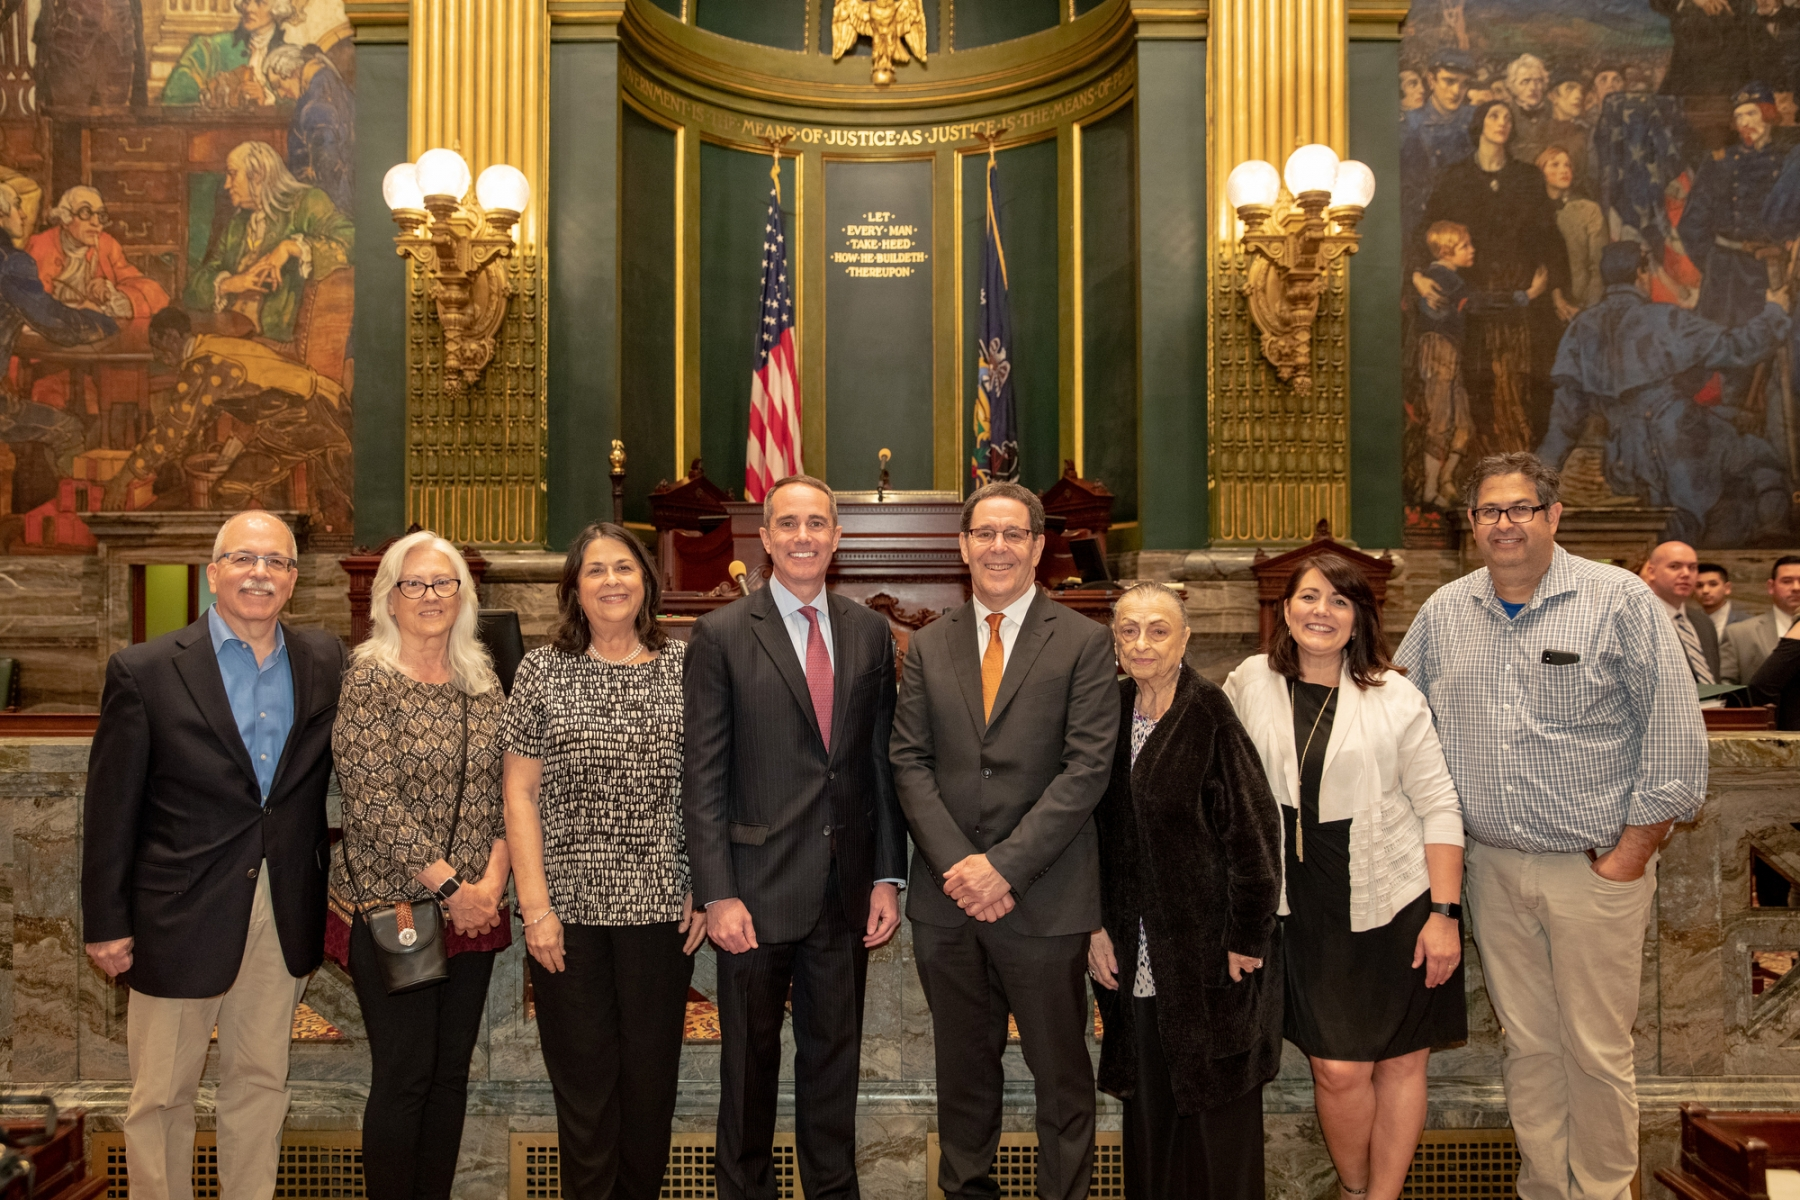 June 3, 2019: Senator Santarsiero, Representative Warren Introduce Resolutions Congratulating Newtown Resident, Nationally Recognized Sportswriter Jayson Stark